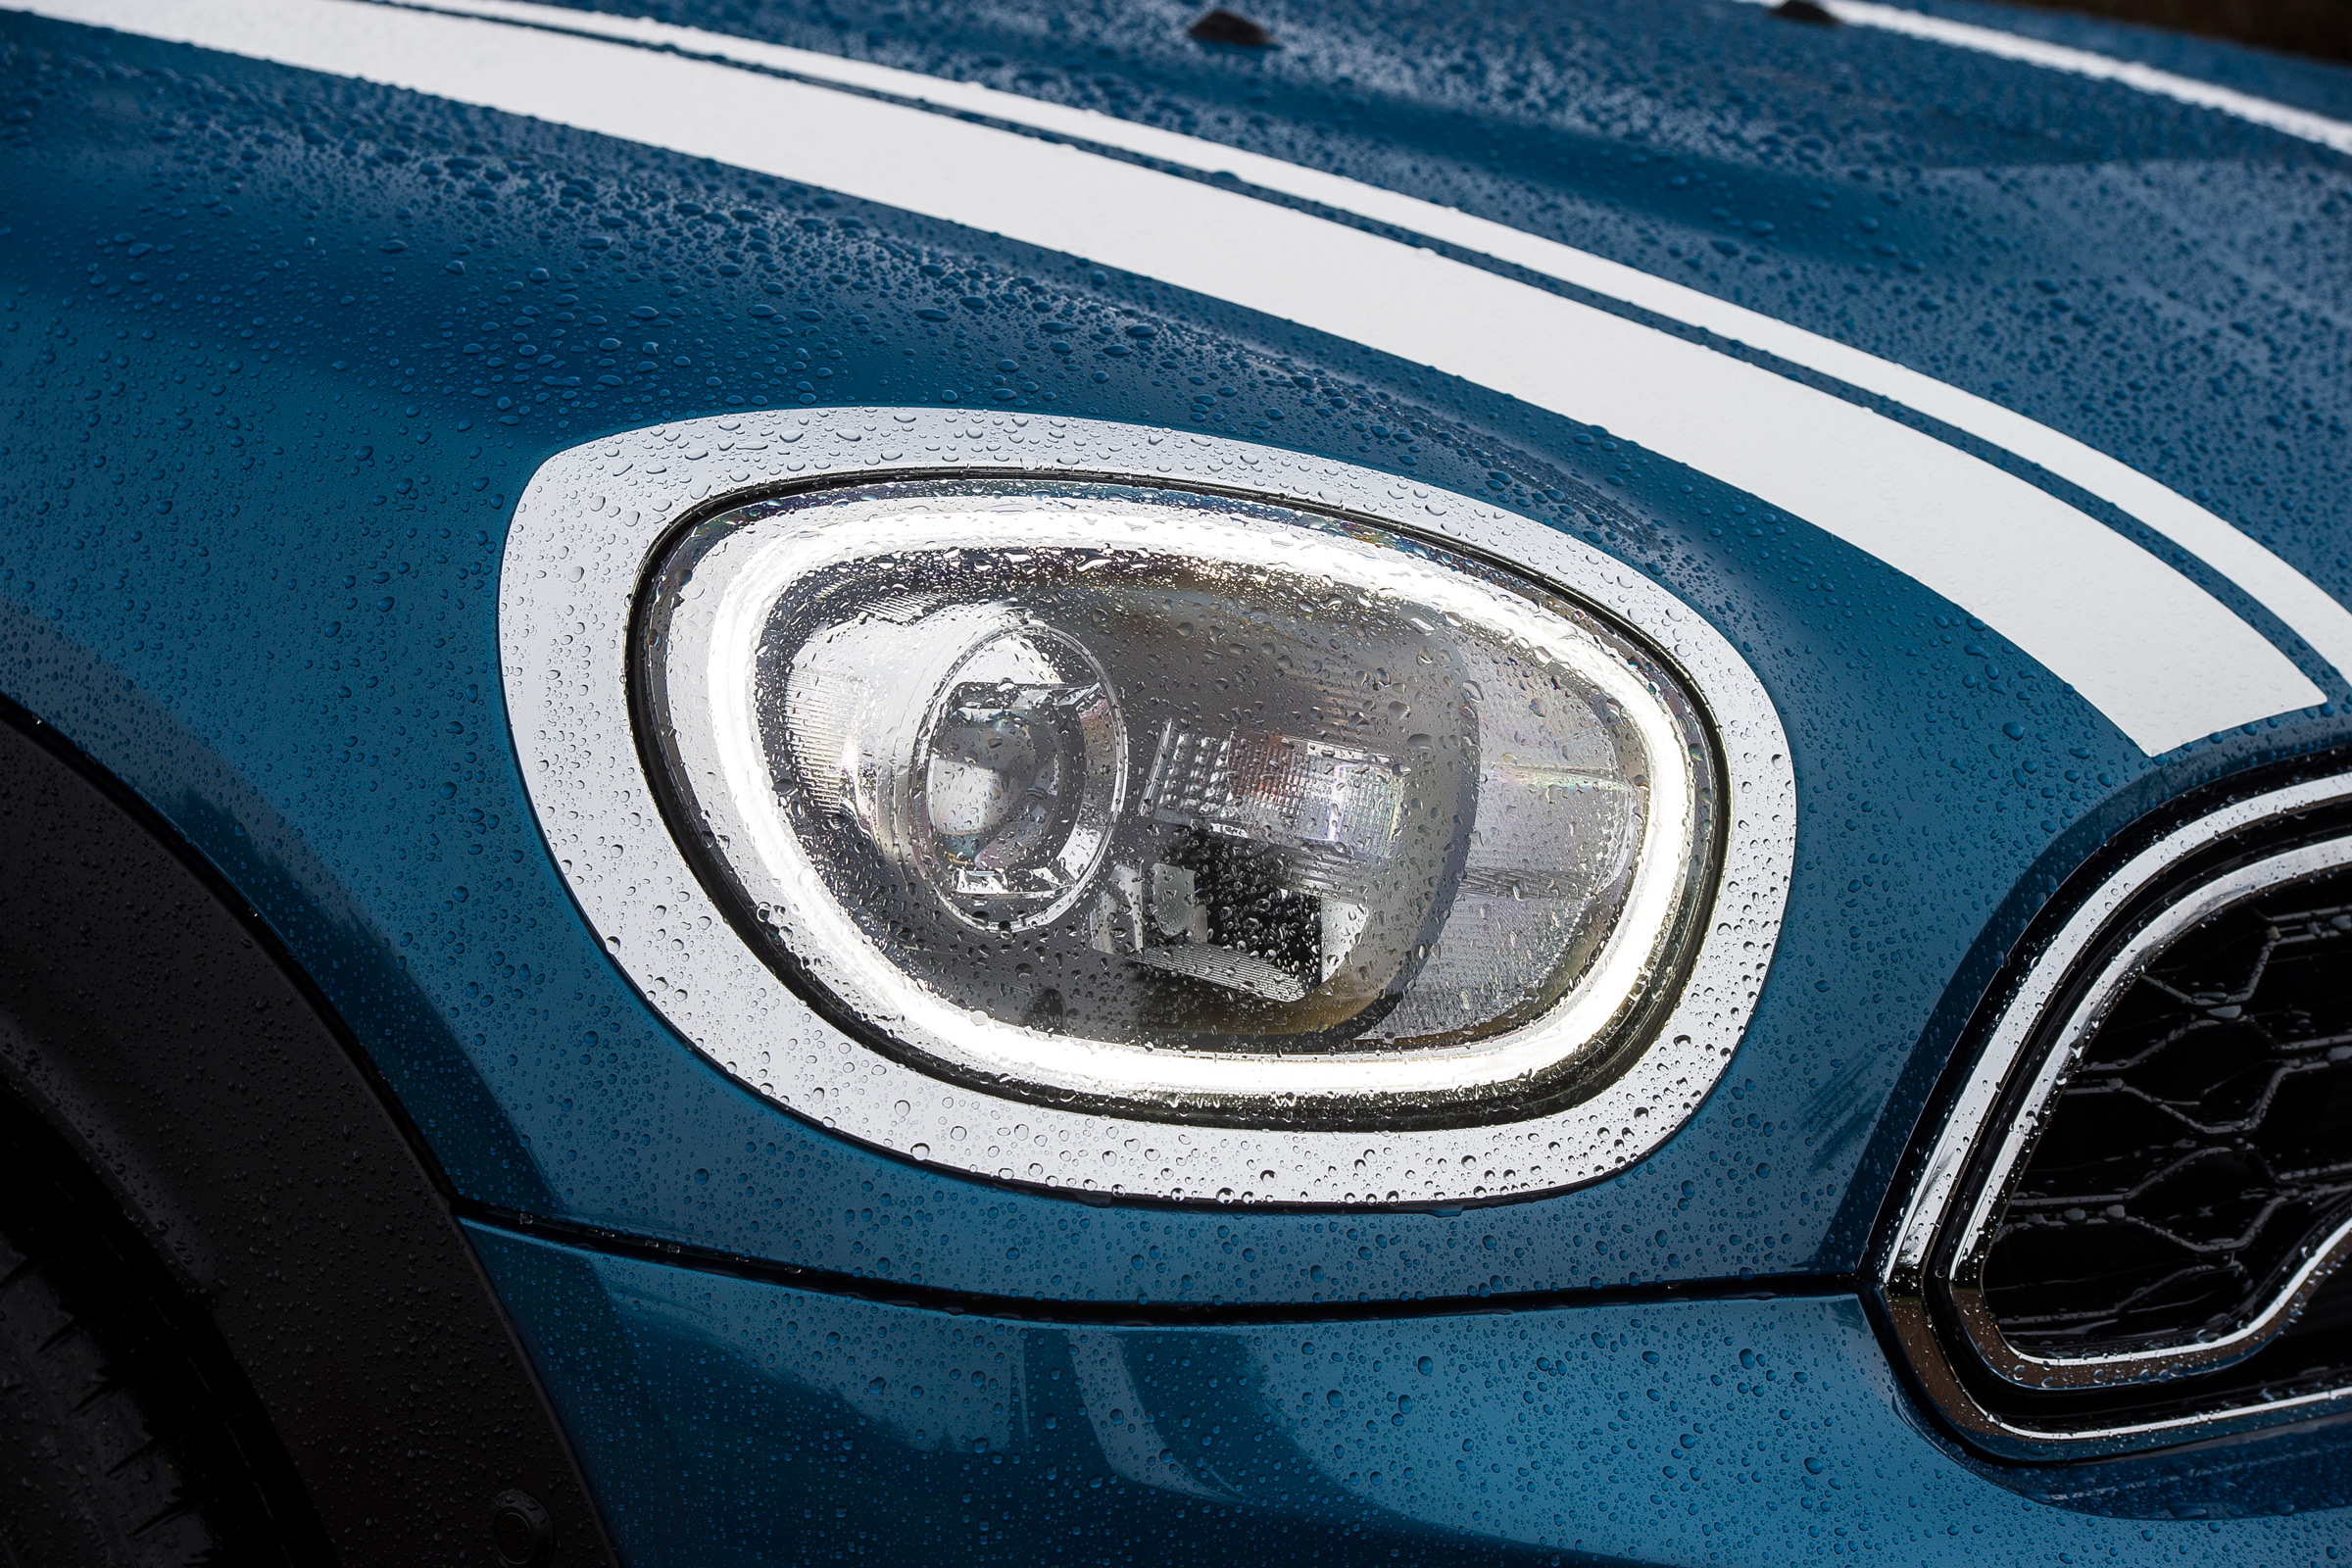 2017 MINI Countryman Exterior View Headlight (Photo 50 of 61)